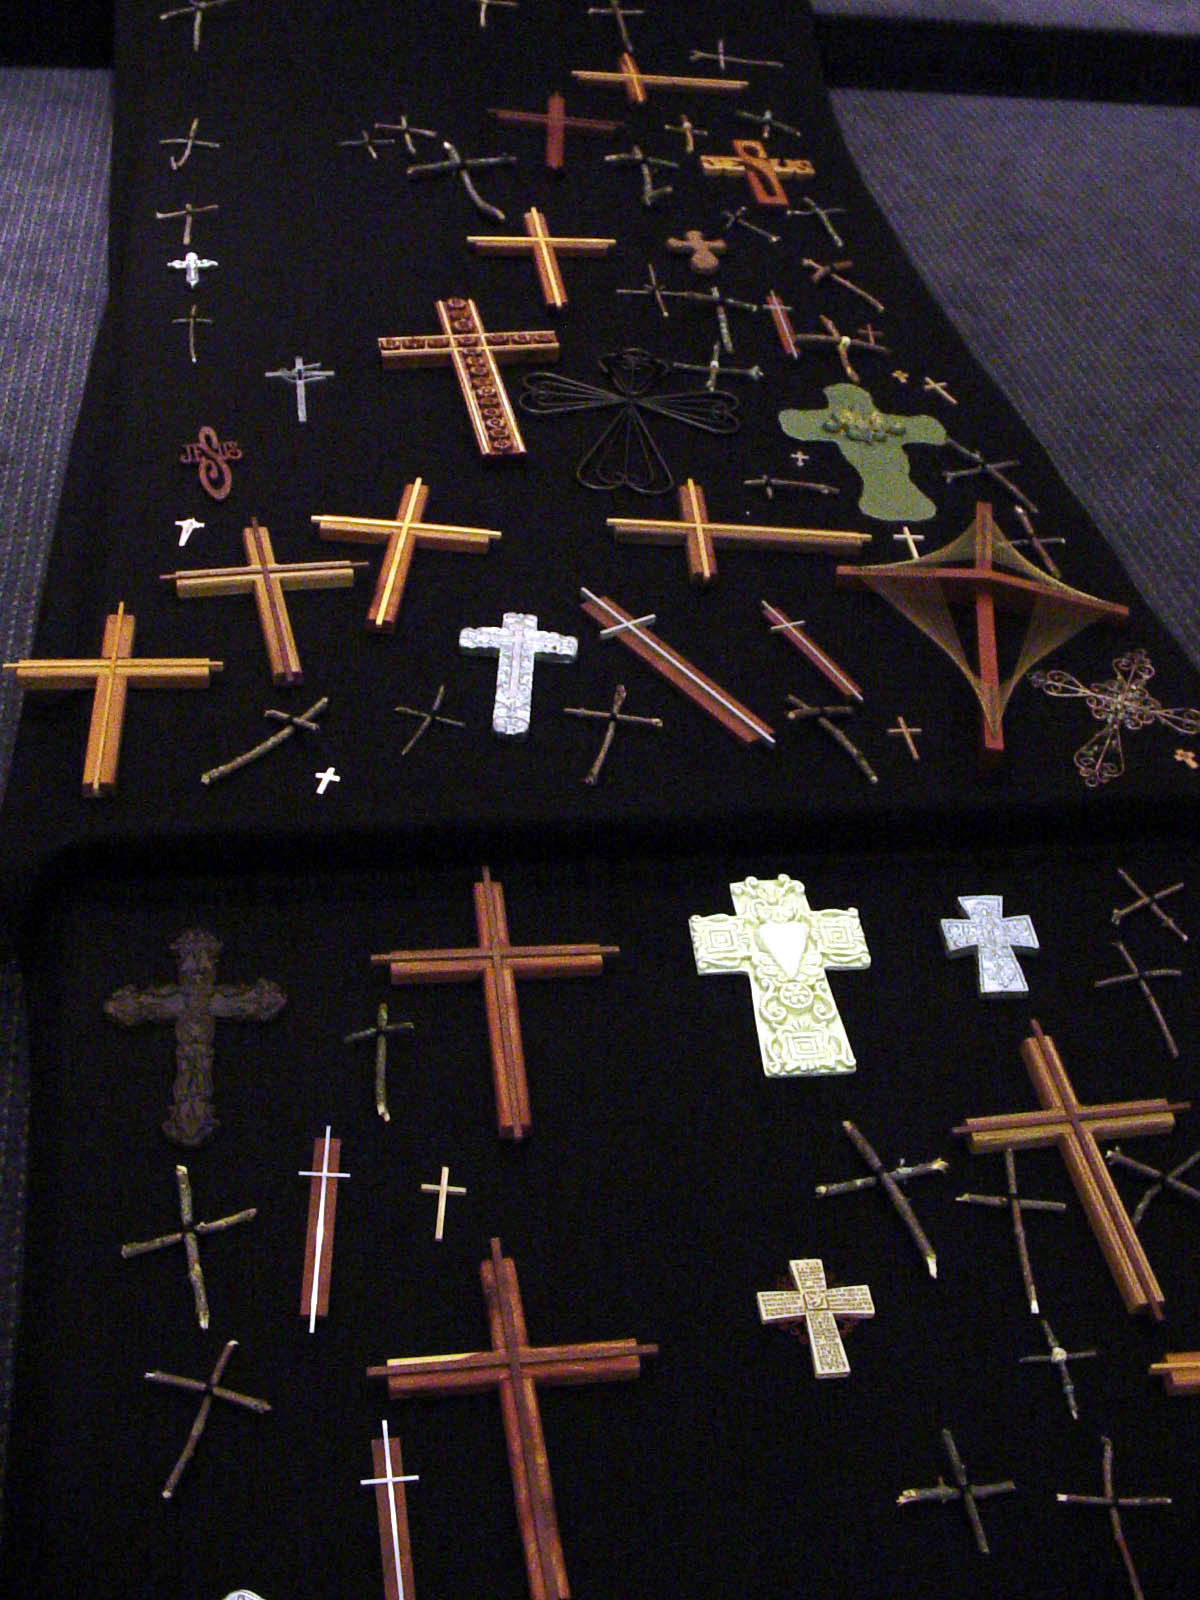 Close-up, vertical runner with community devotional crosses